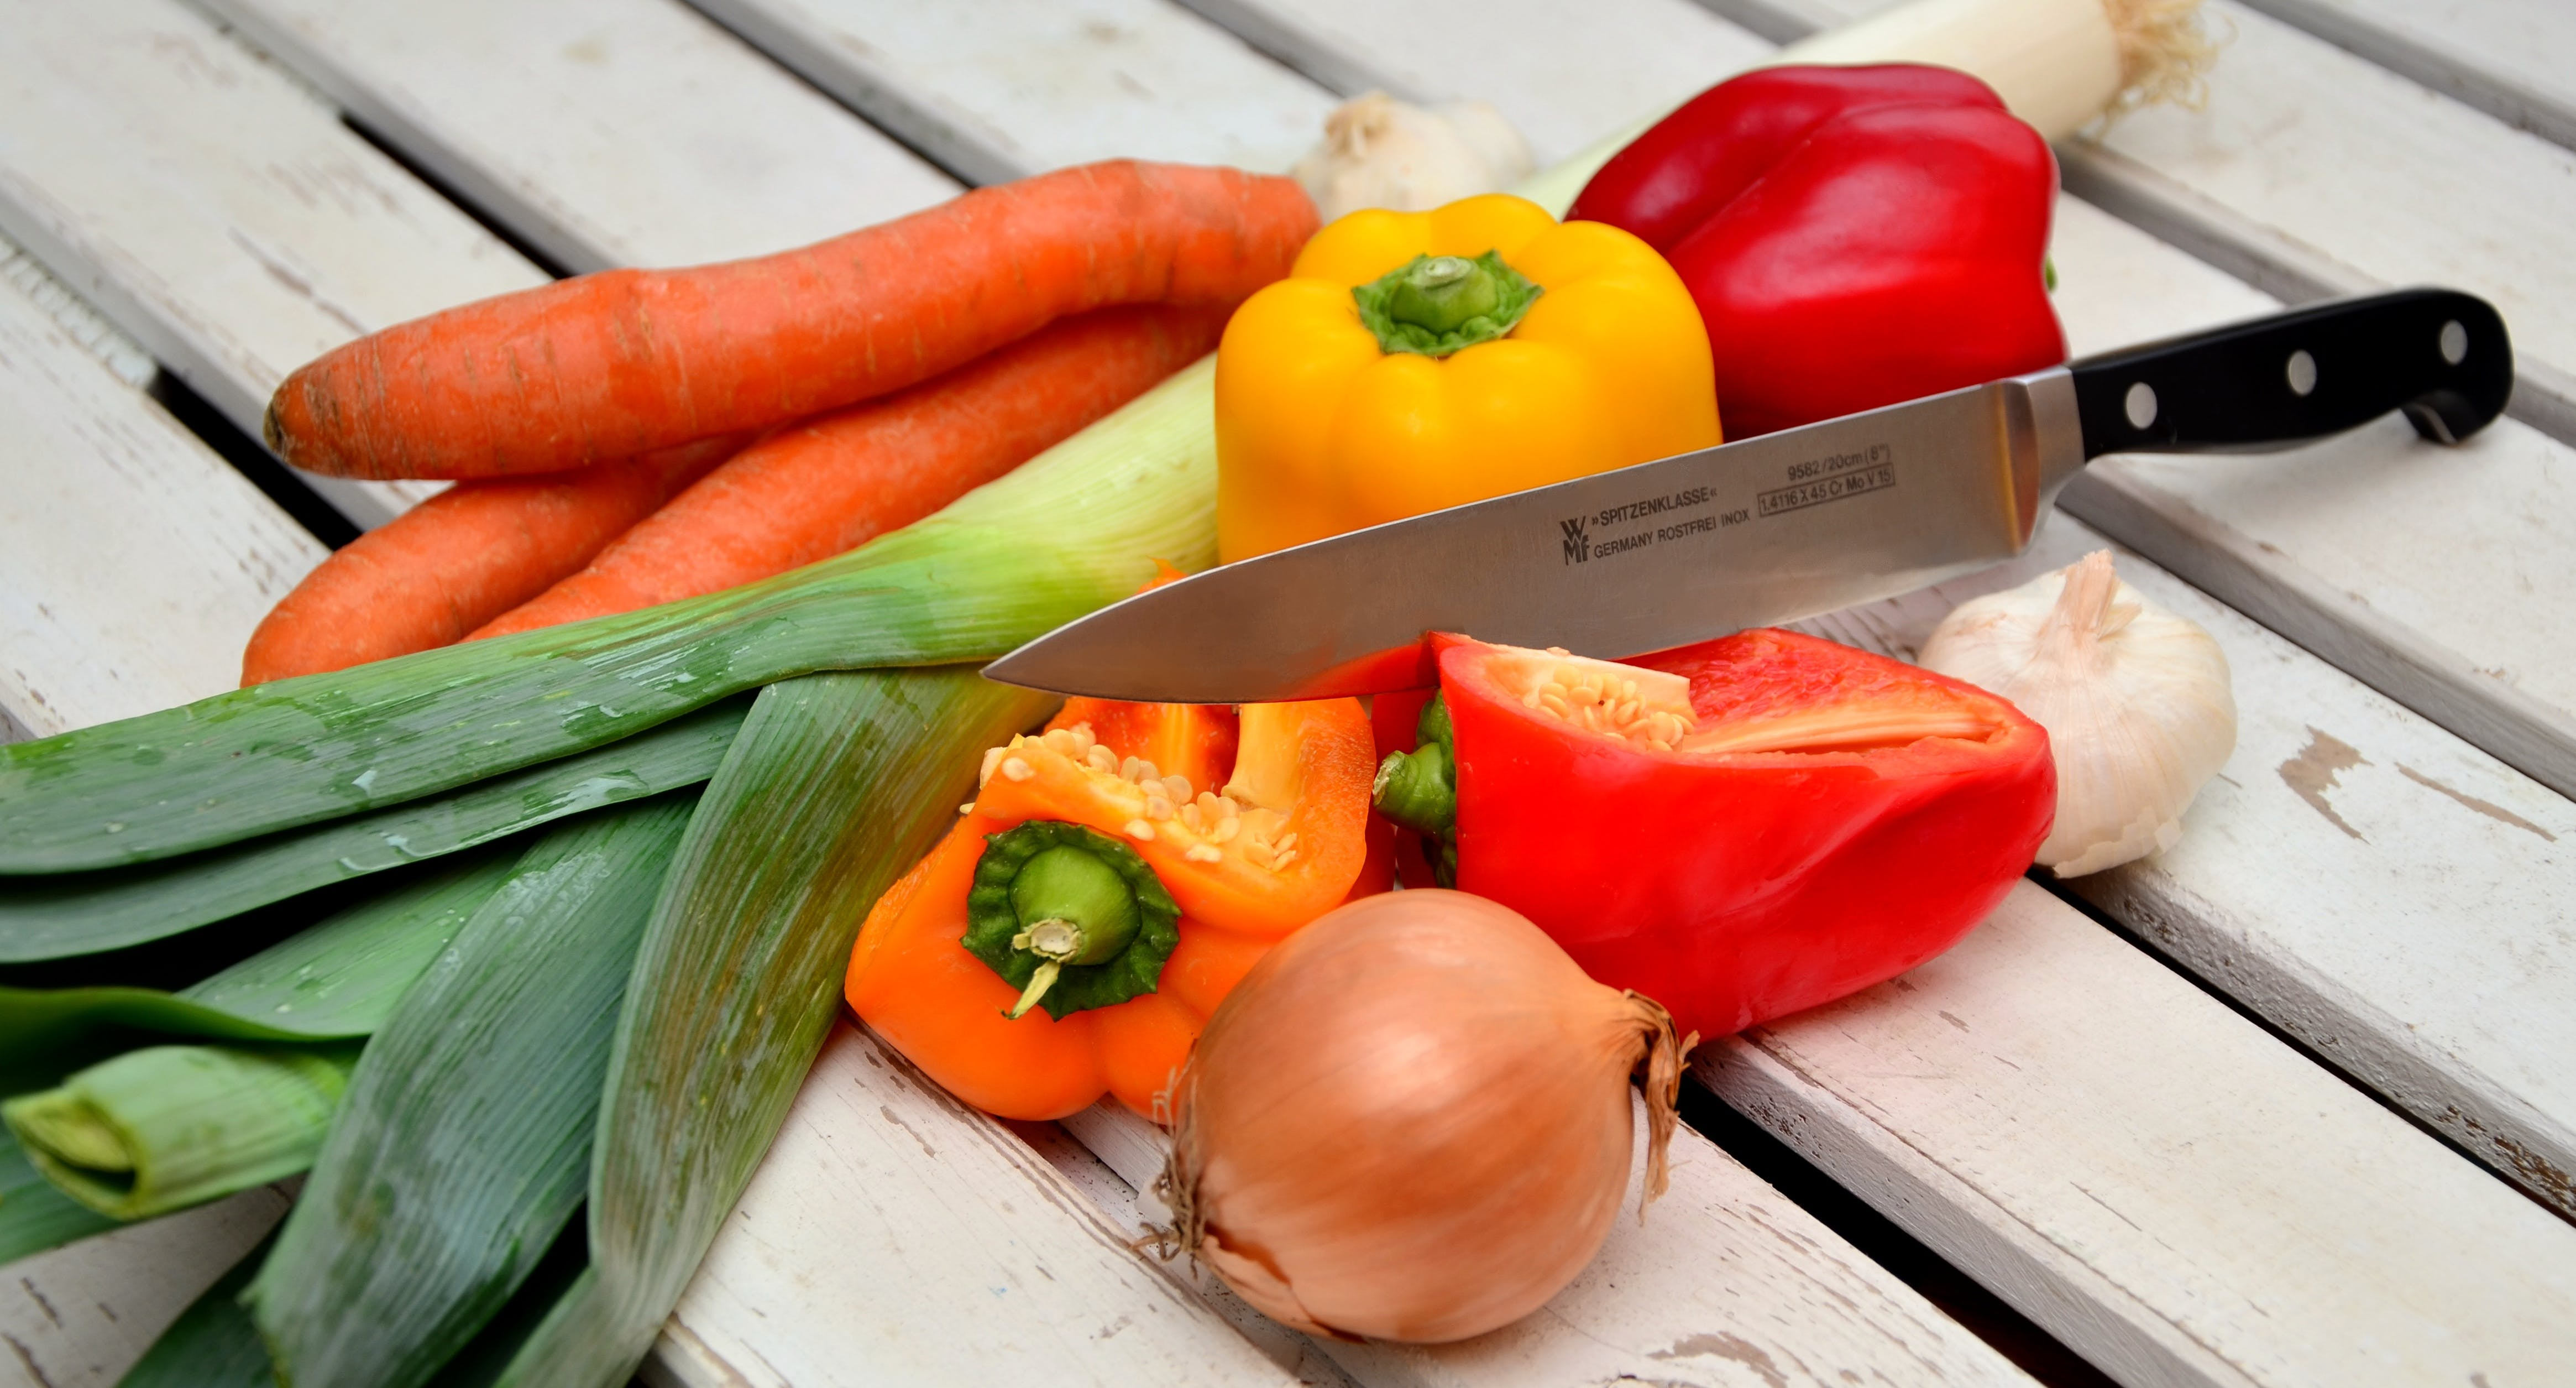 Vegetables With Knife